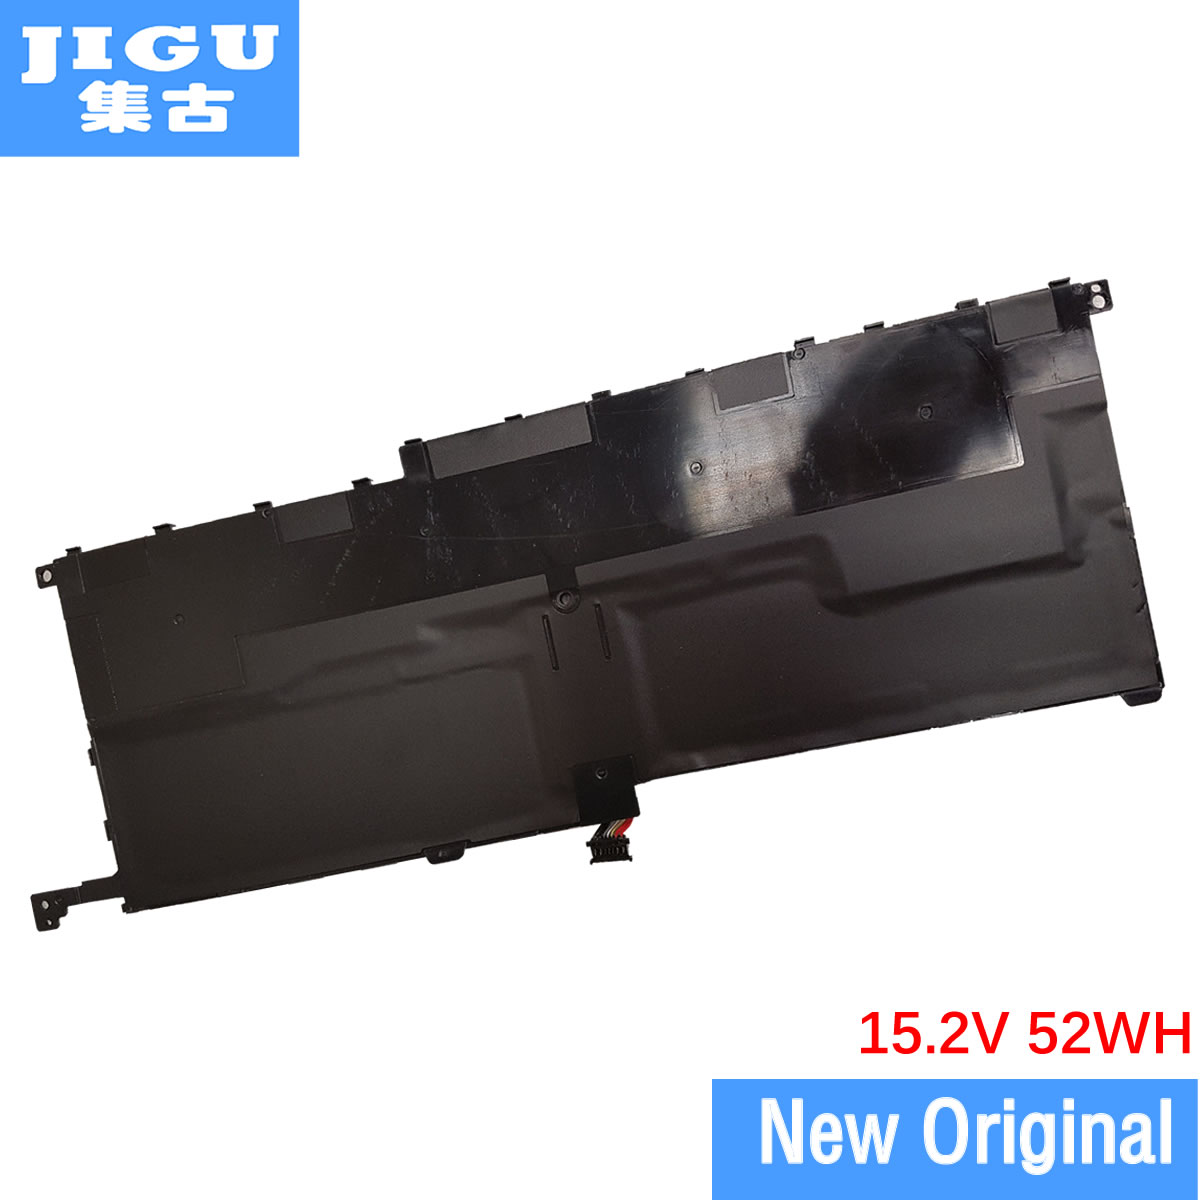 JIGU ORIGNAL laptop battery 00HW028 SB10F46466 FOR LENOVO ThinkPad X1 Carbon 2016 4th Yoga 20v 4 5a 90w adlx90ndc2a 36200285 45n0243 45n0244 laptop ac adapter for lenovo thinkpad x1 carbon series touch ultrabook